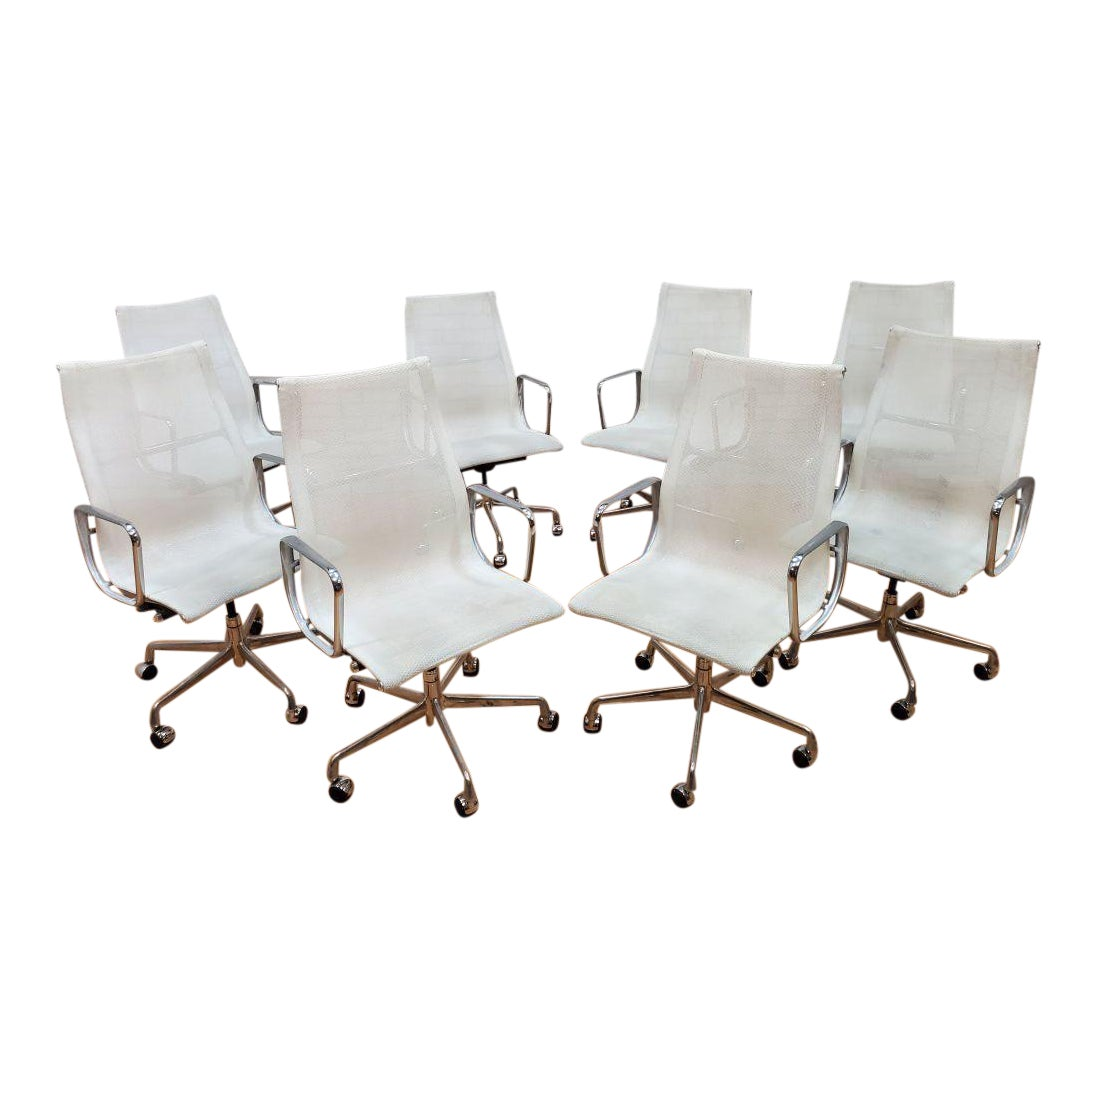 Charles Eames for Herman Miller Conference Room Office Chairs - Set of 49